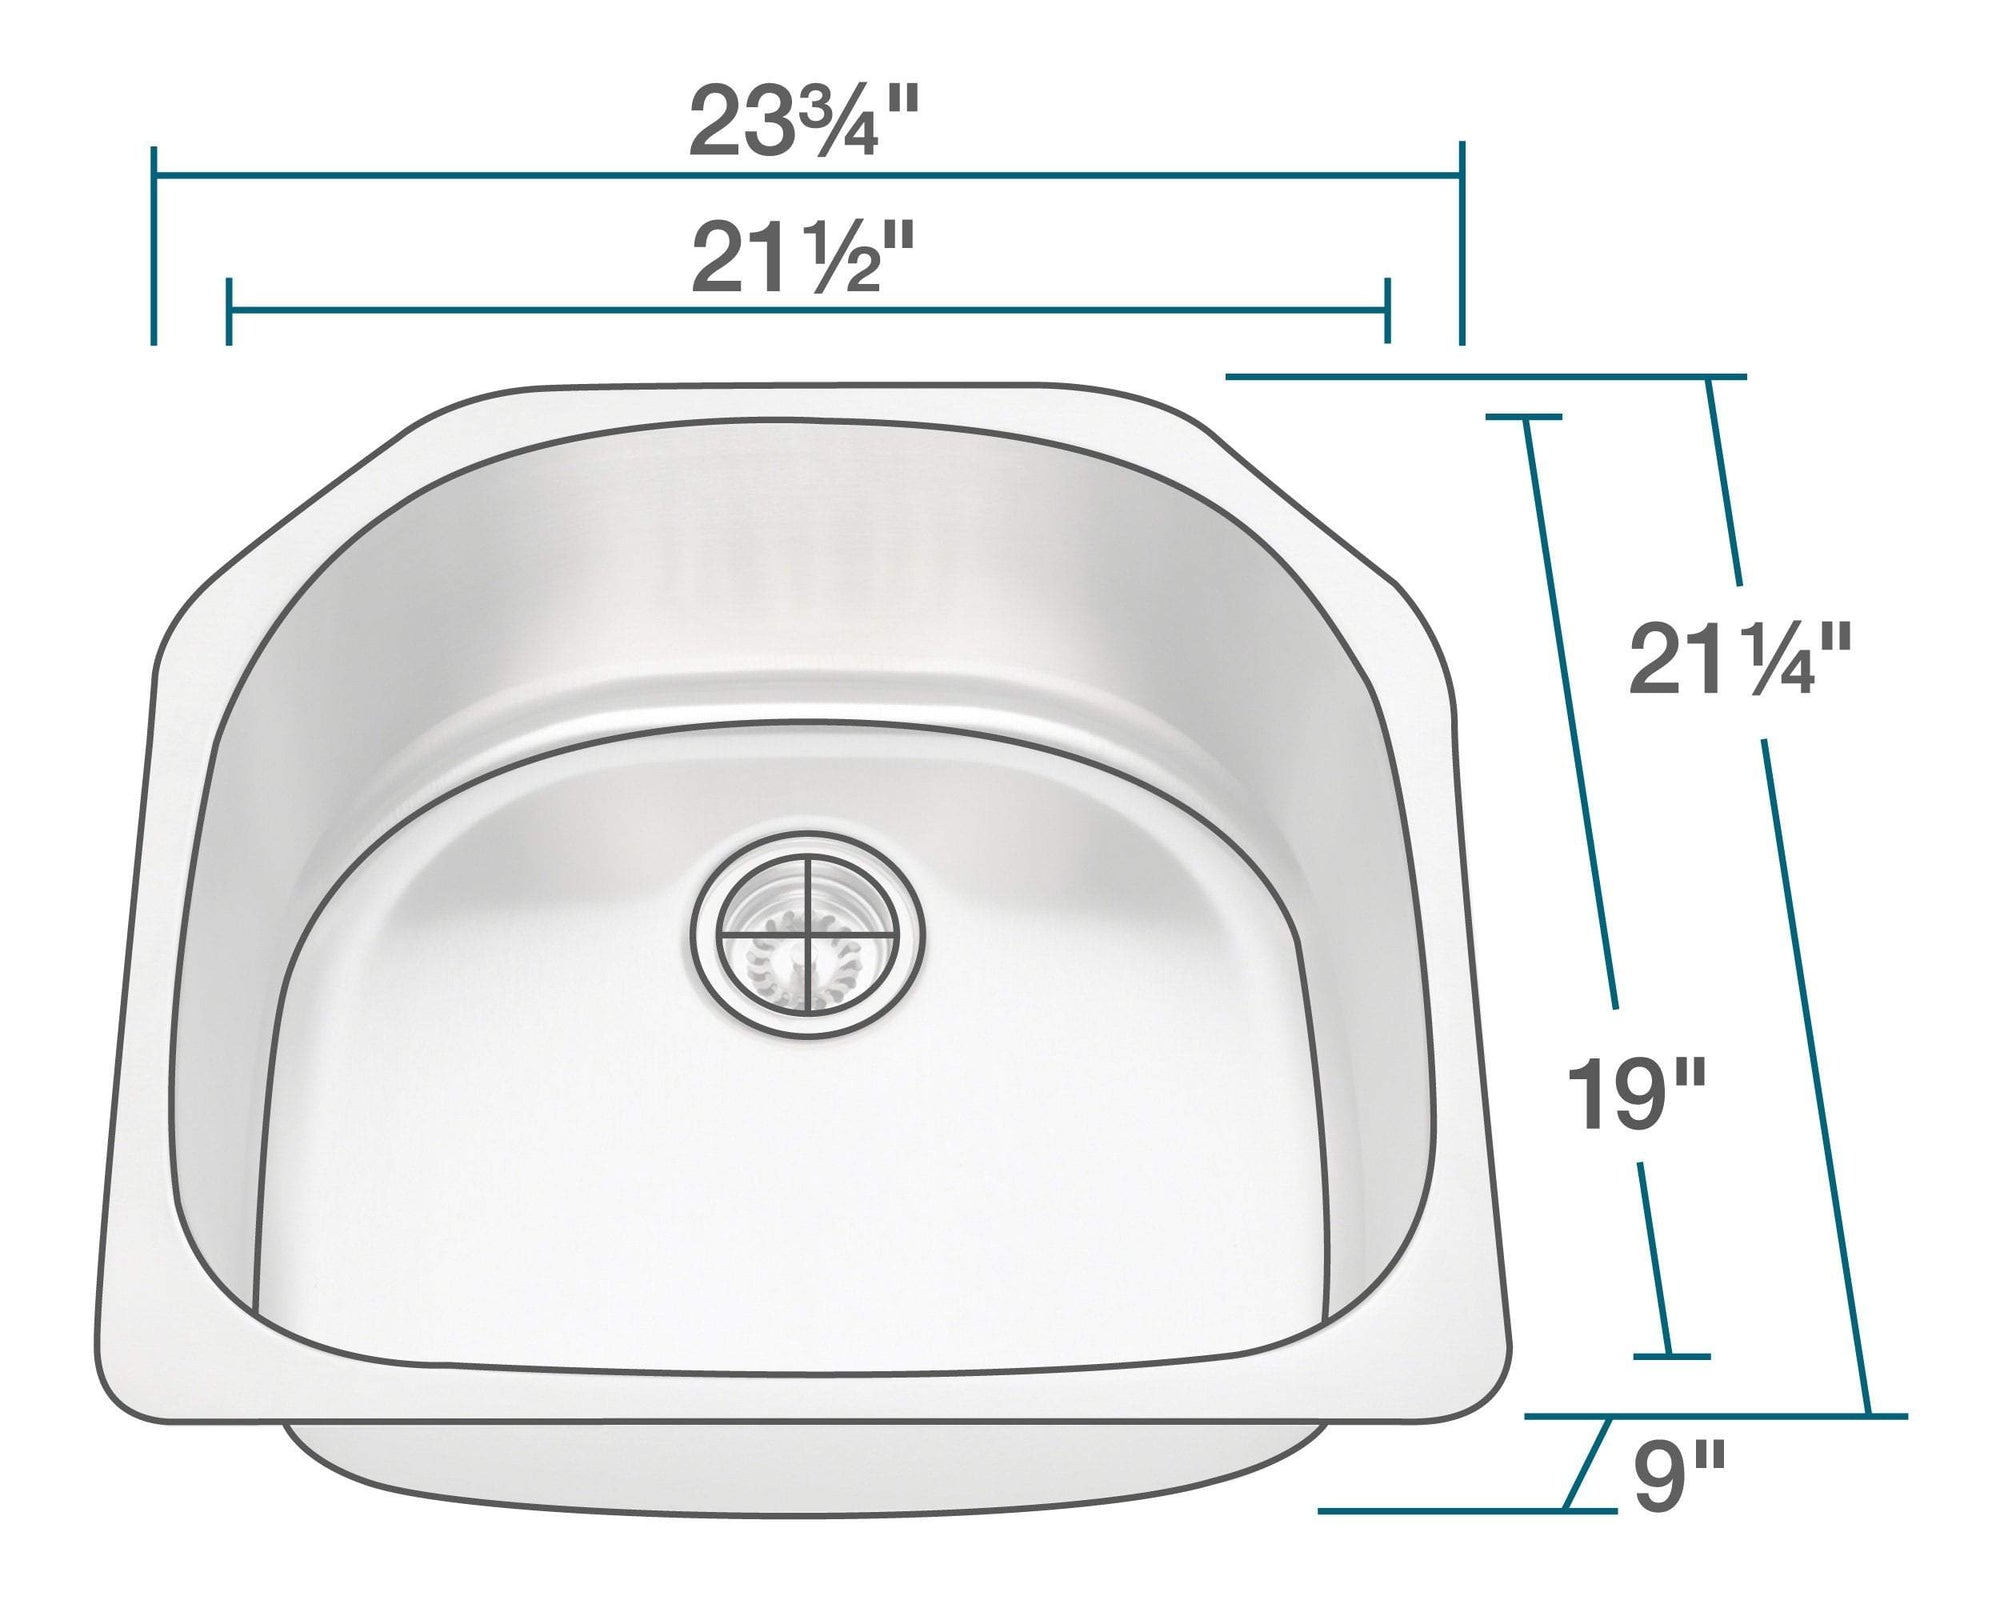 P1242-18 D-Bowl Stainless Steel Kitchen Sink